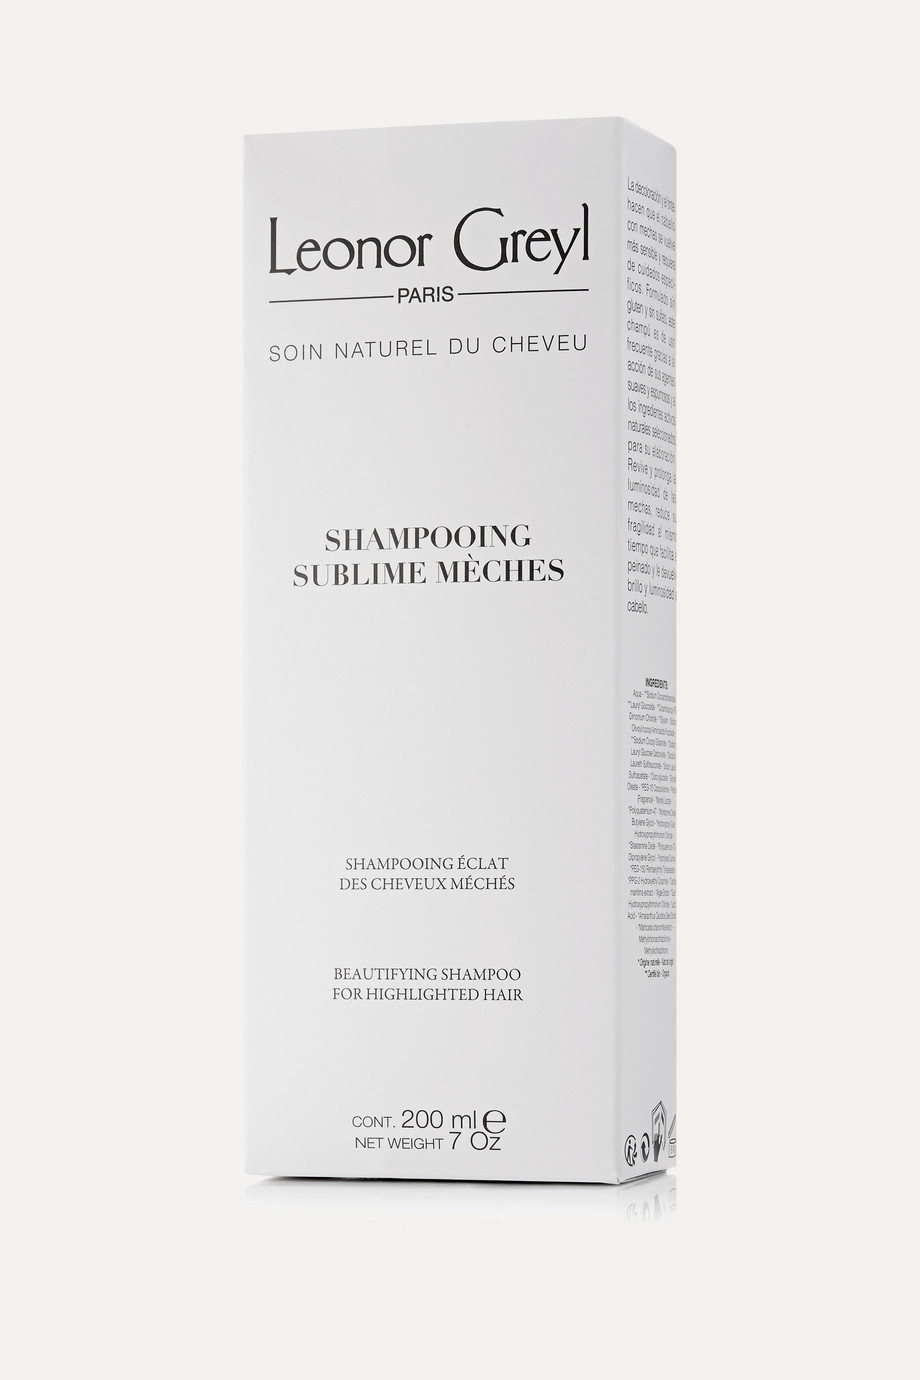 Leonor Greyl Paris Beautifying Shampoo for Highlighted Hair, 200ml